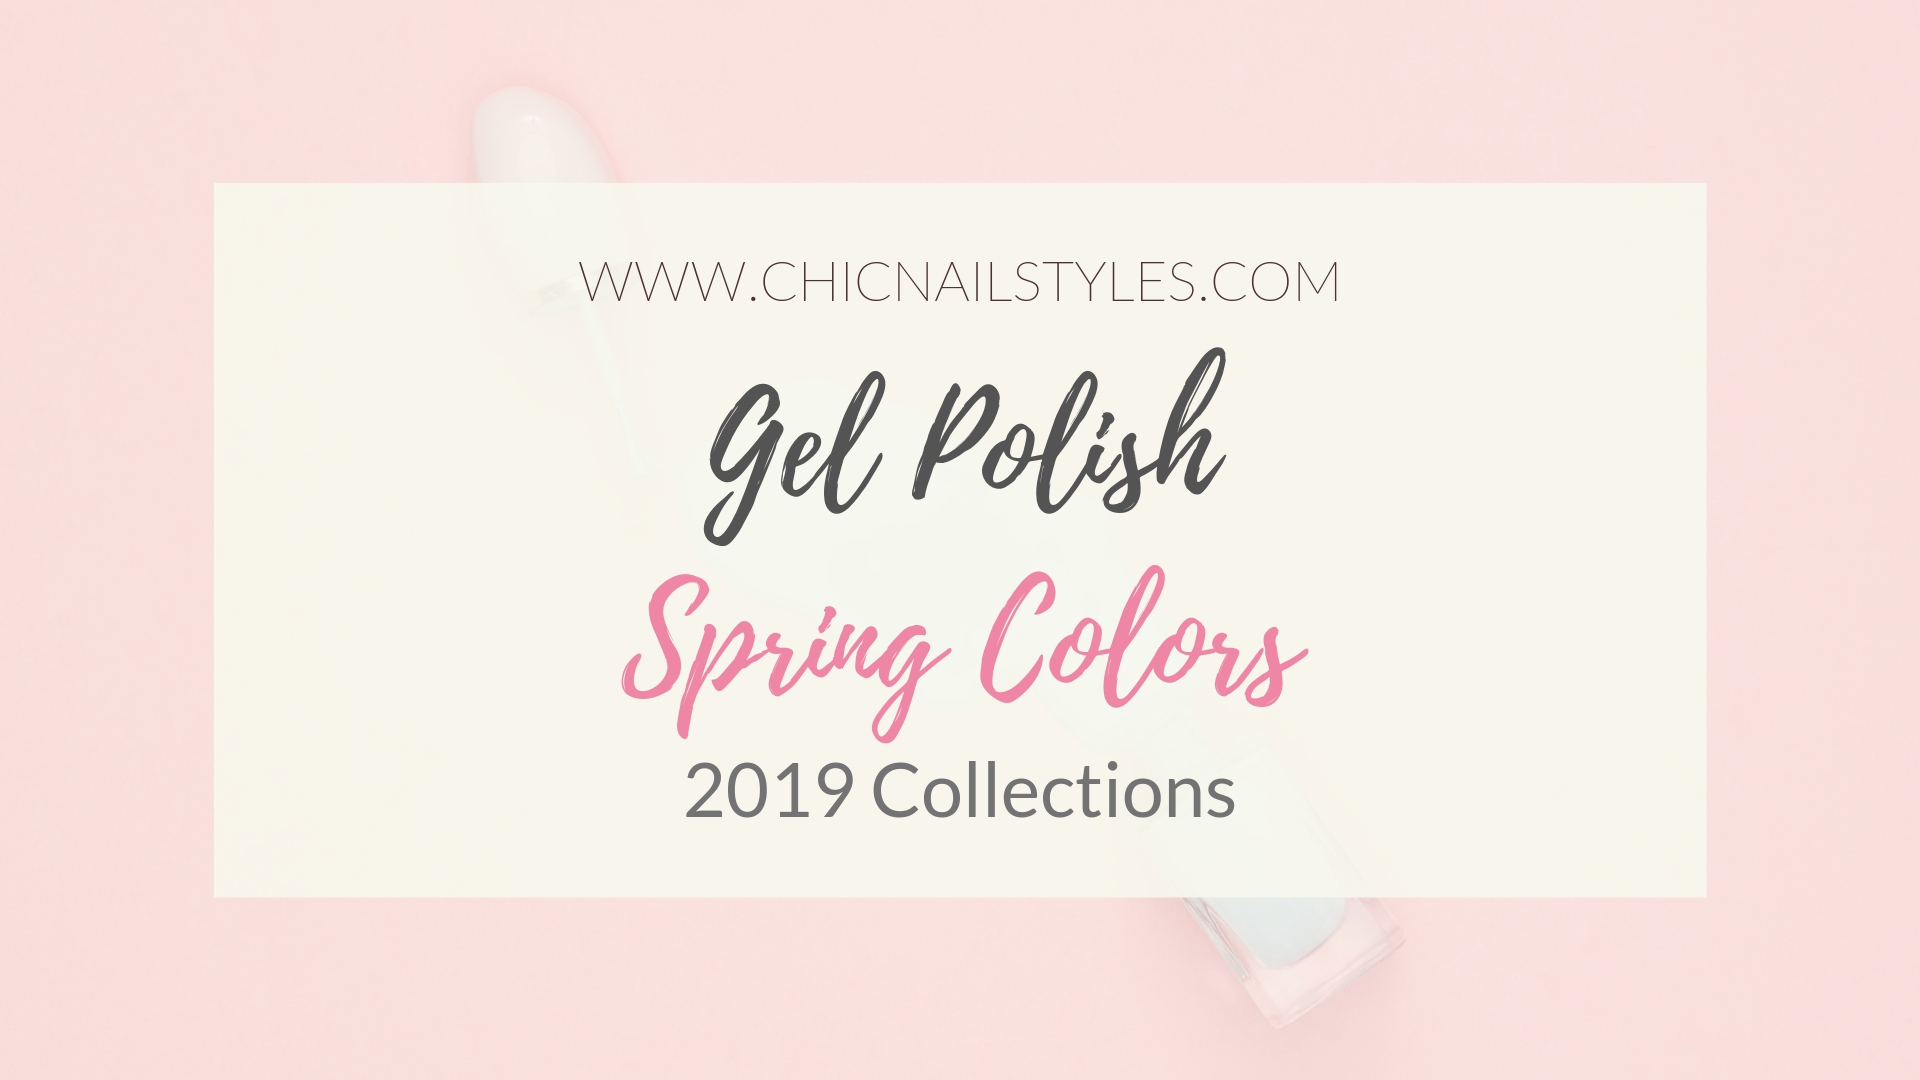 Gel Polish Spring Colors